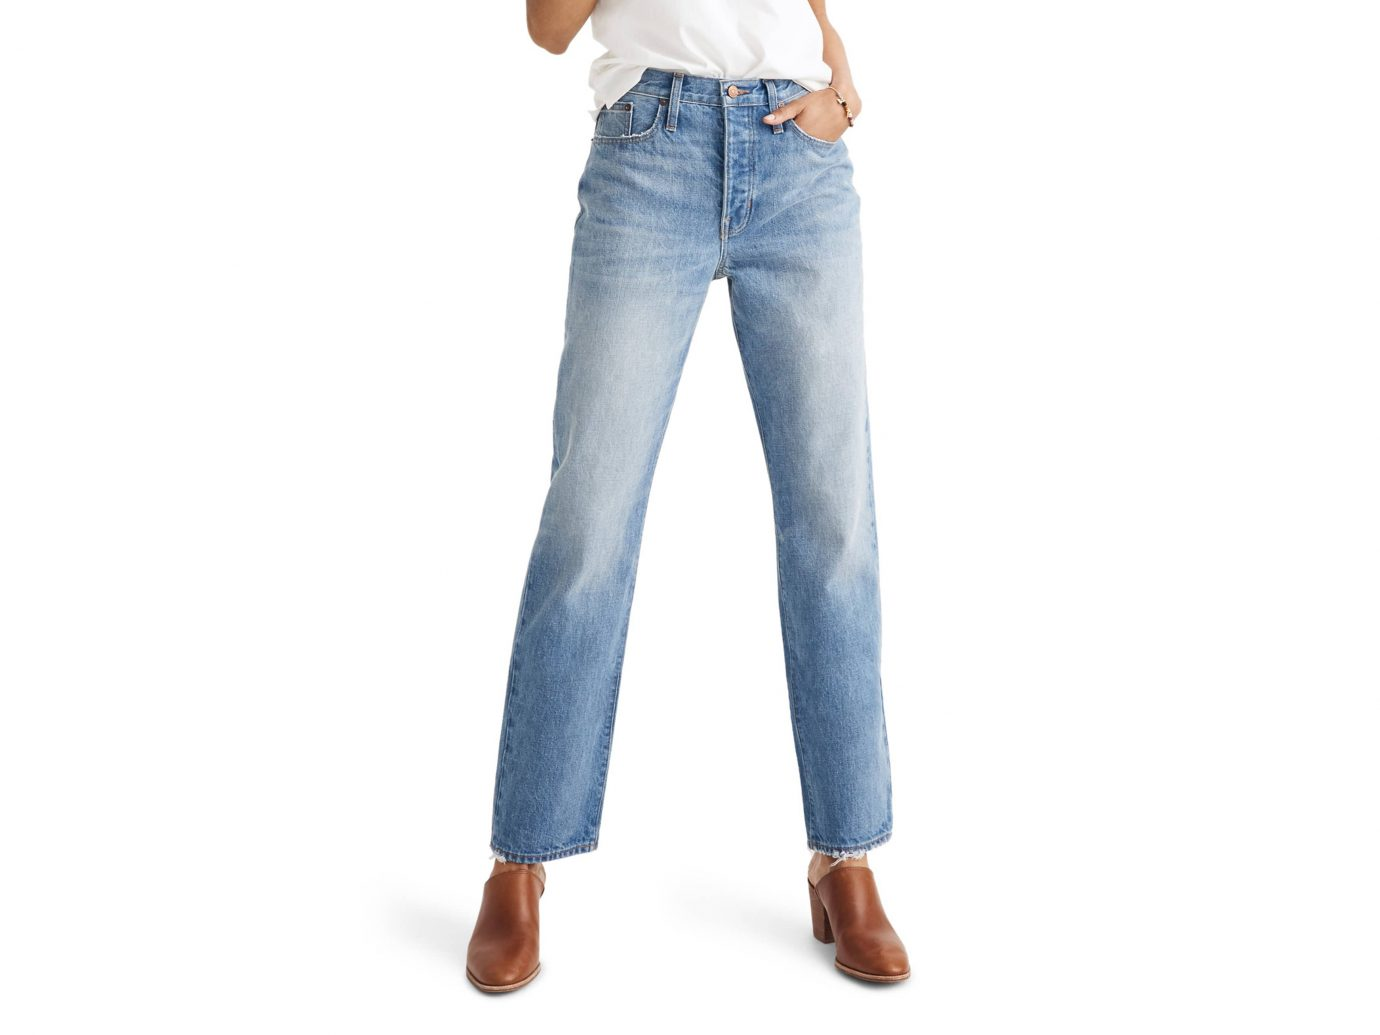 • Madewell The Dadjean High Waist Jeans in Dustin